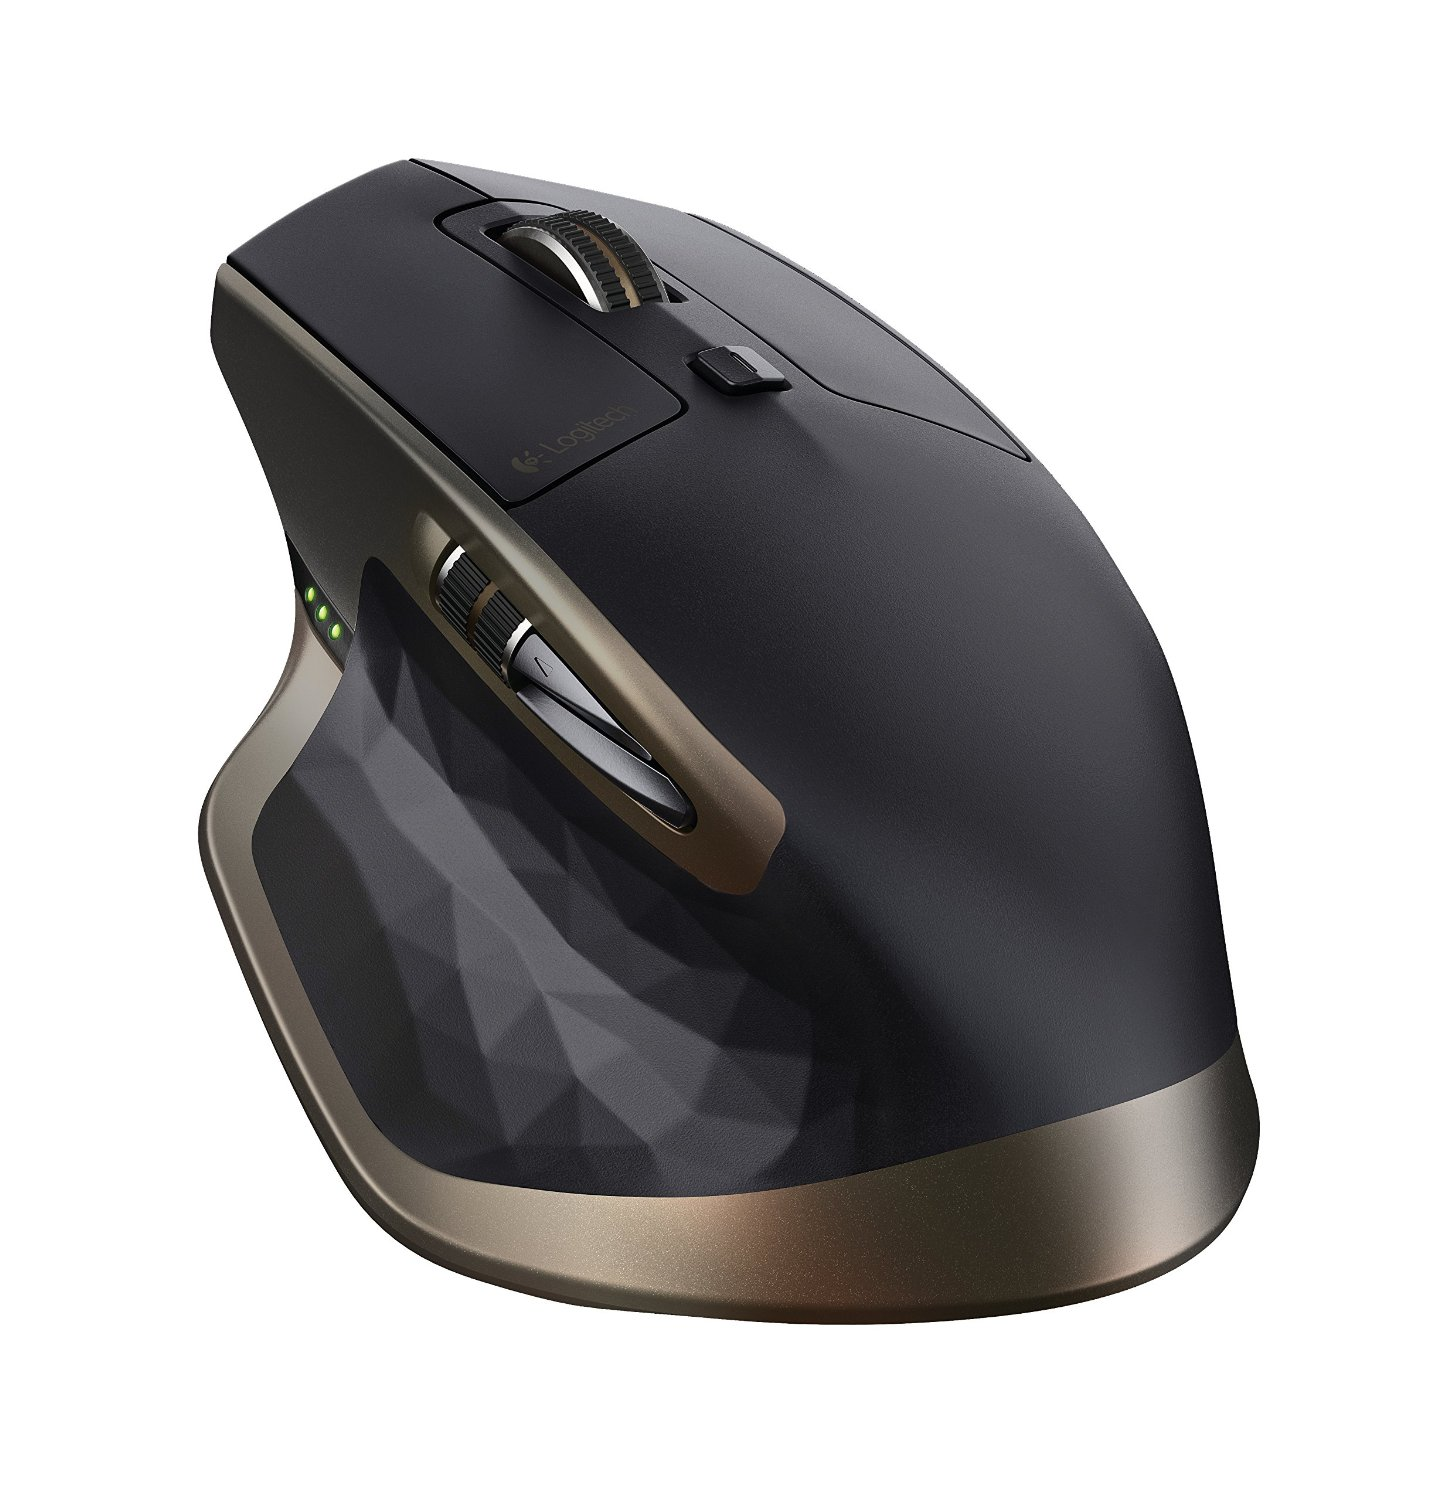 Logitech MX Master Wireless 2S Bluetooth Mouse